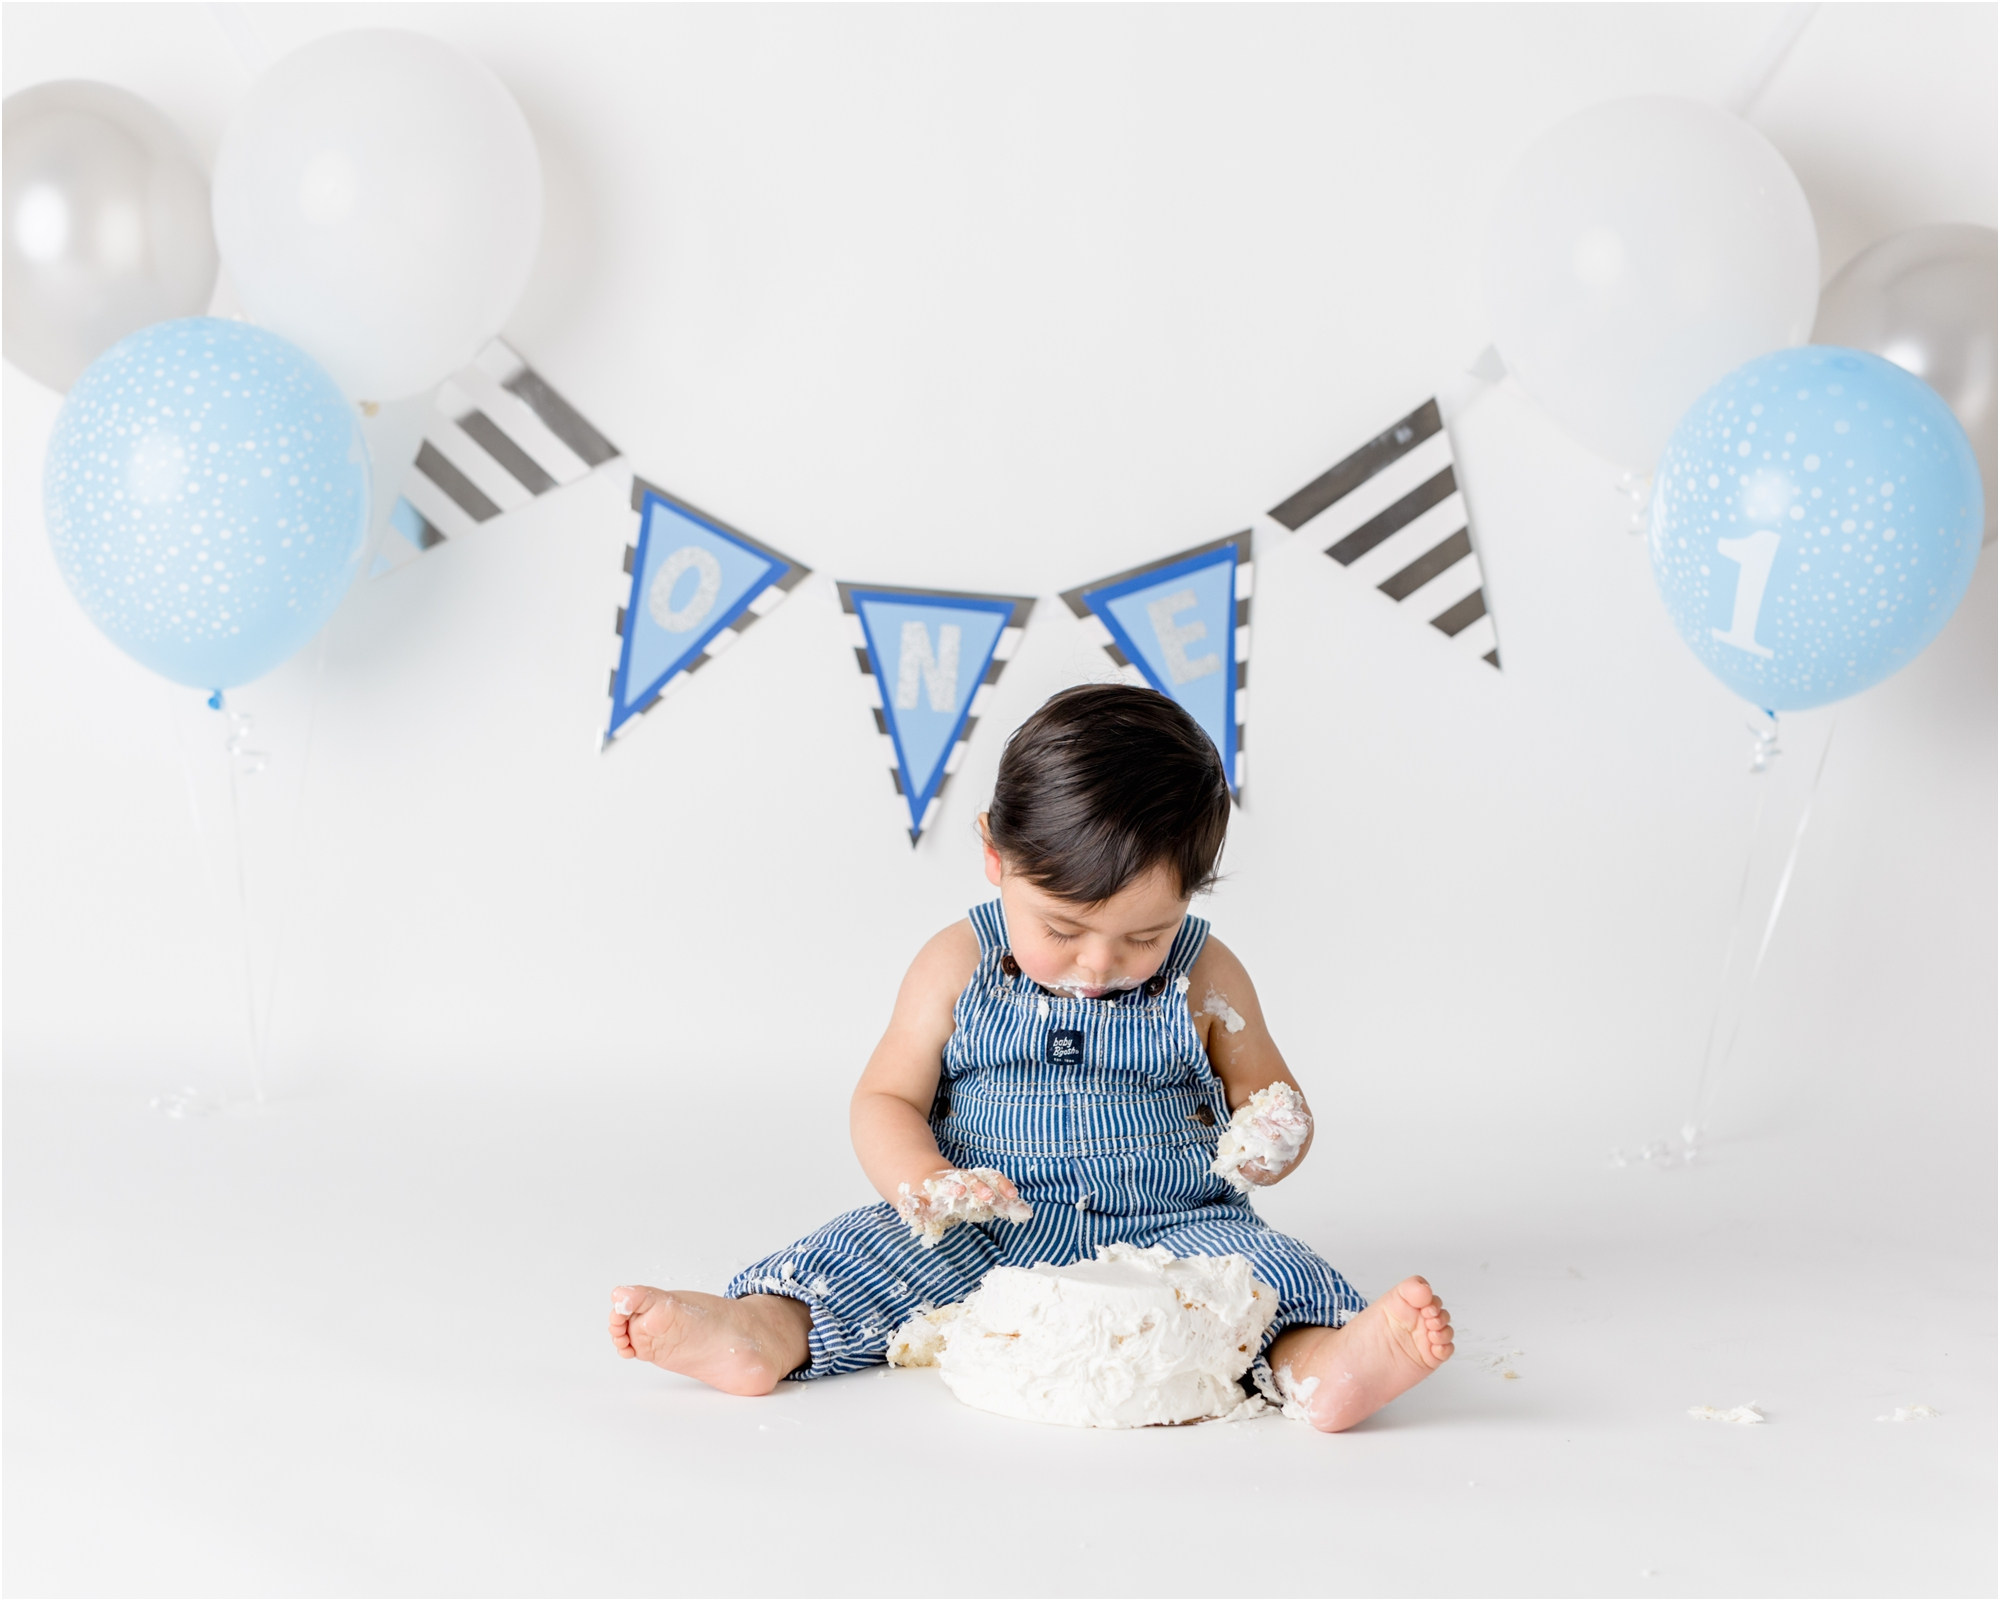 Little boy playing with frosting from cake. Photo by Lifetime of Clicks Photography.